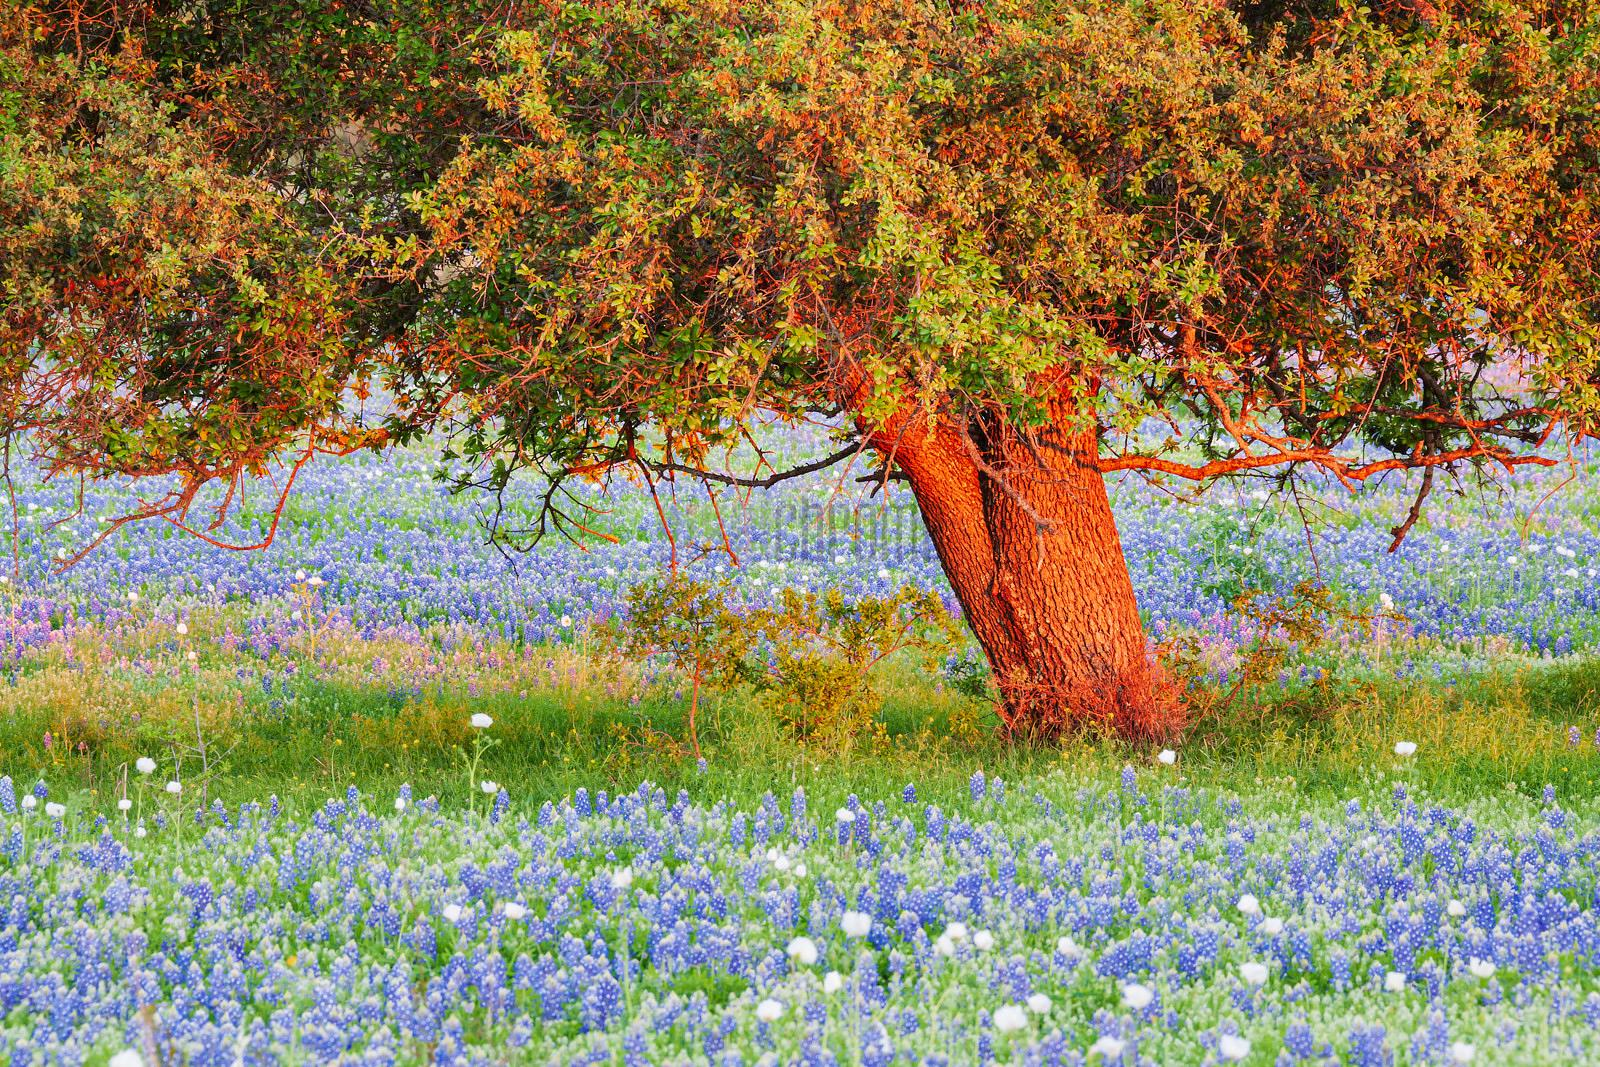 Live Oak Tree and Bluebonnets at Sunset